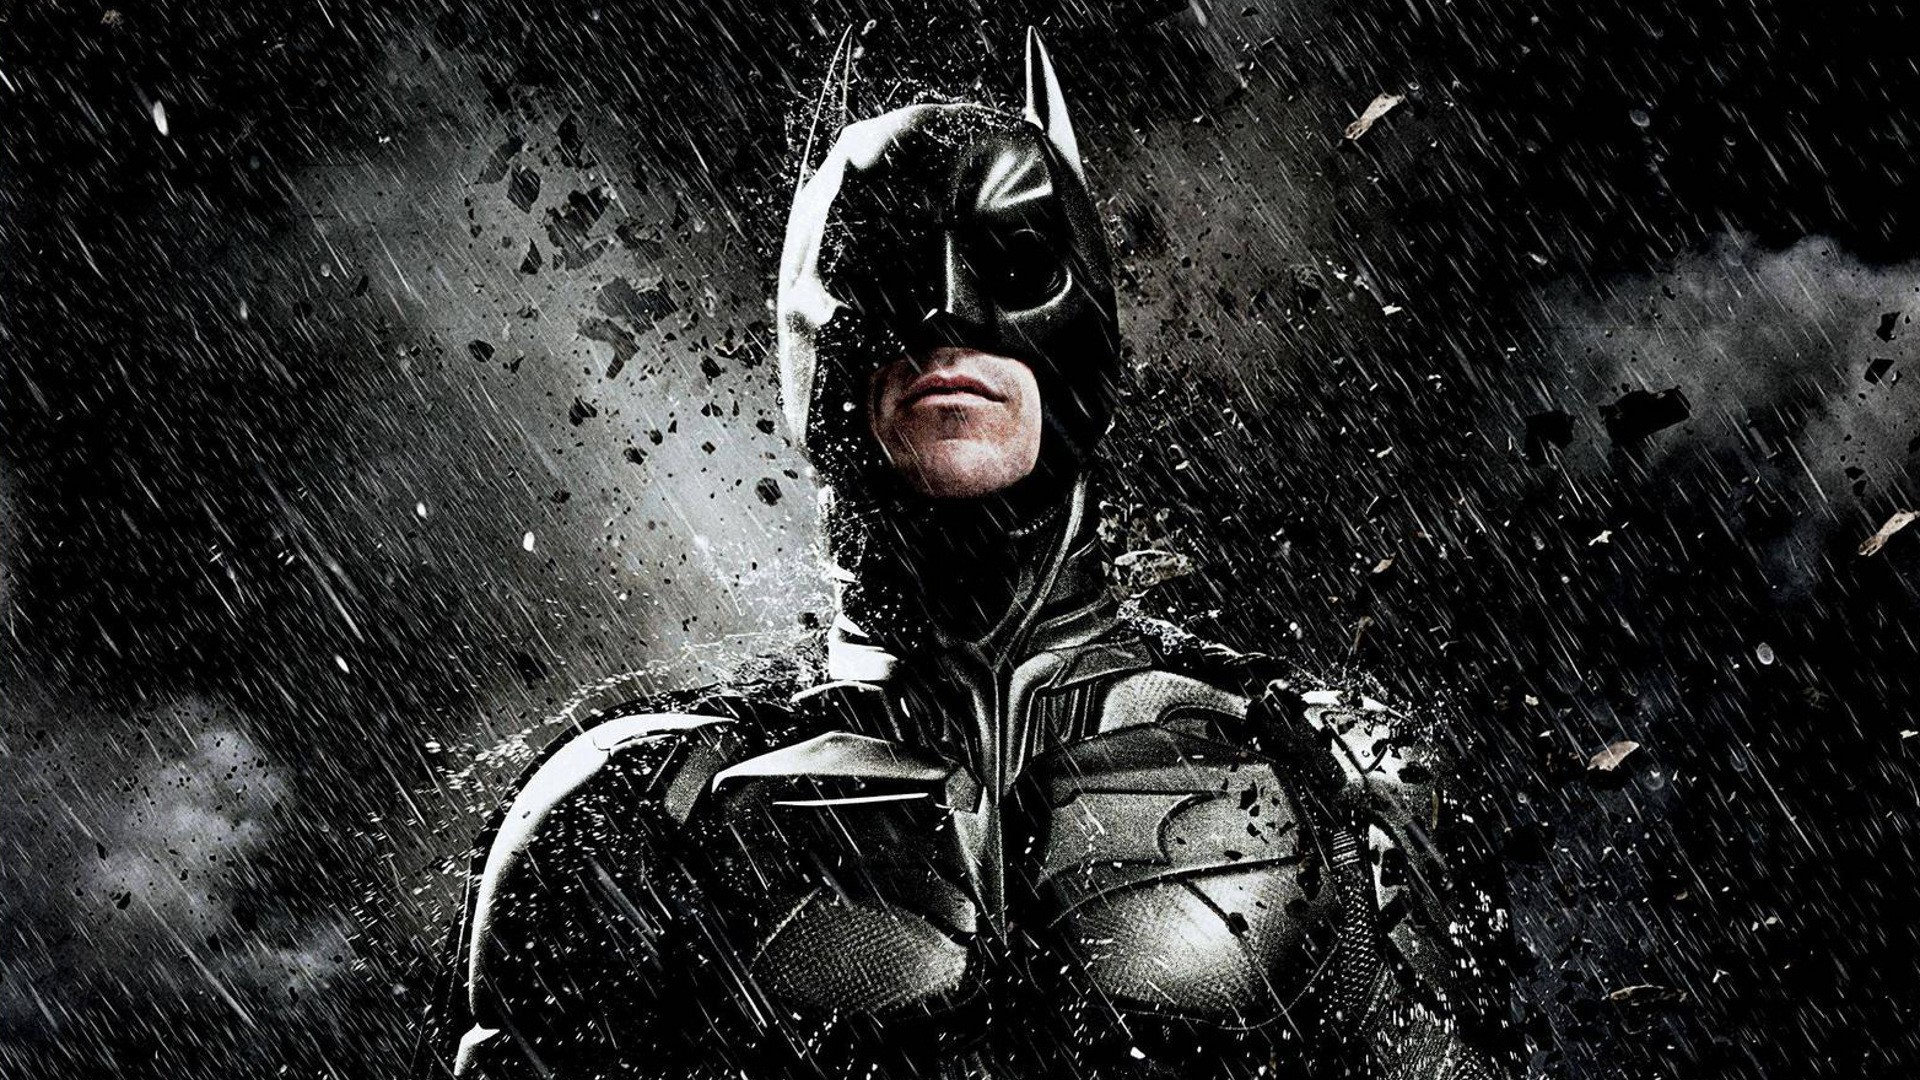 Batman The Dark Knight Rises Full HD Wallpaper And Background Image